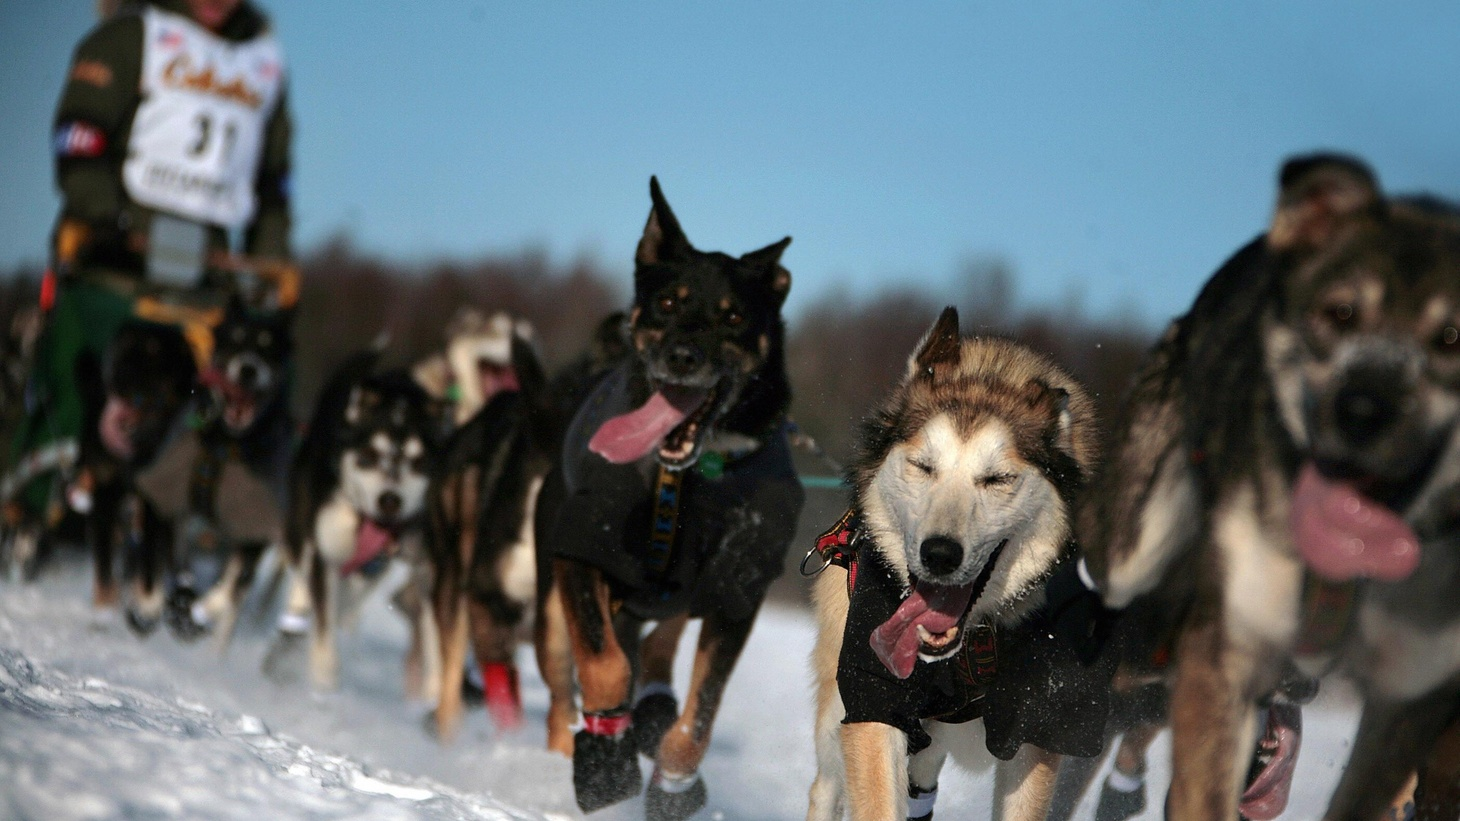 This year's Iditarod dog sled race in Alaska is over now and a record six dogs died this time out. Three dogs are lost to hypothermia or heart failure or what they dubiously call unknown causes on the Iditarod trail most years but this year it was six. Six innocent animals who want to please their masters so desperately that they will literally run to death for them...